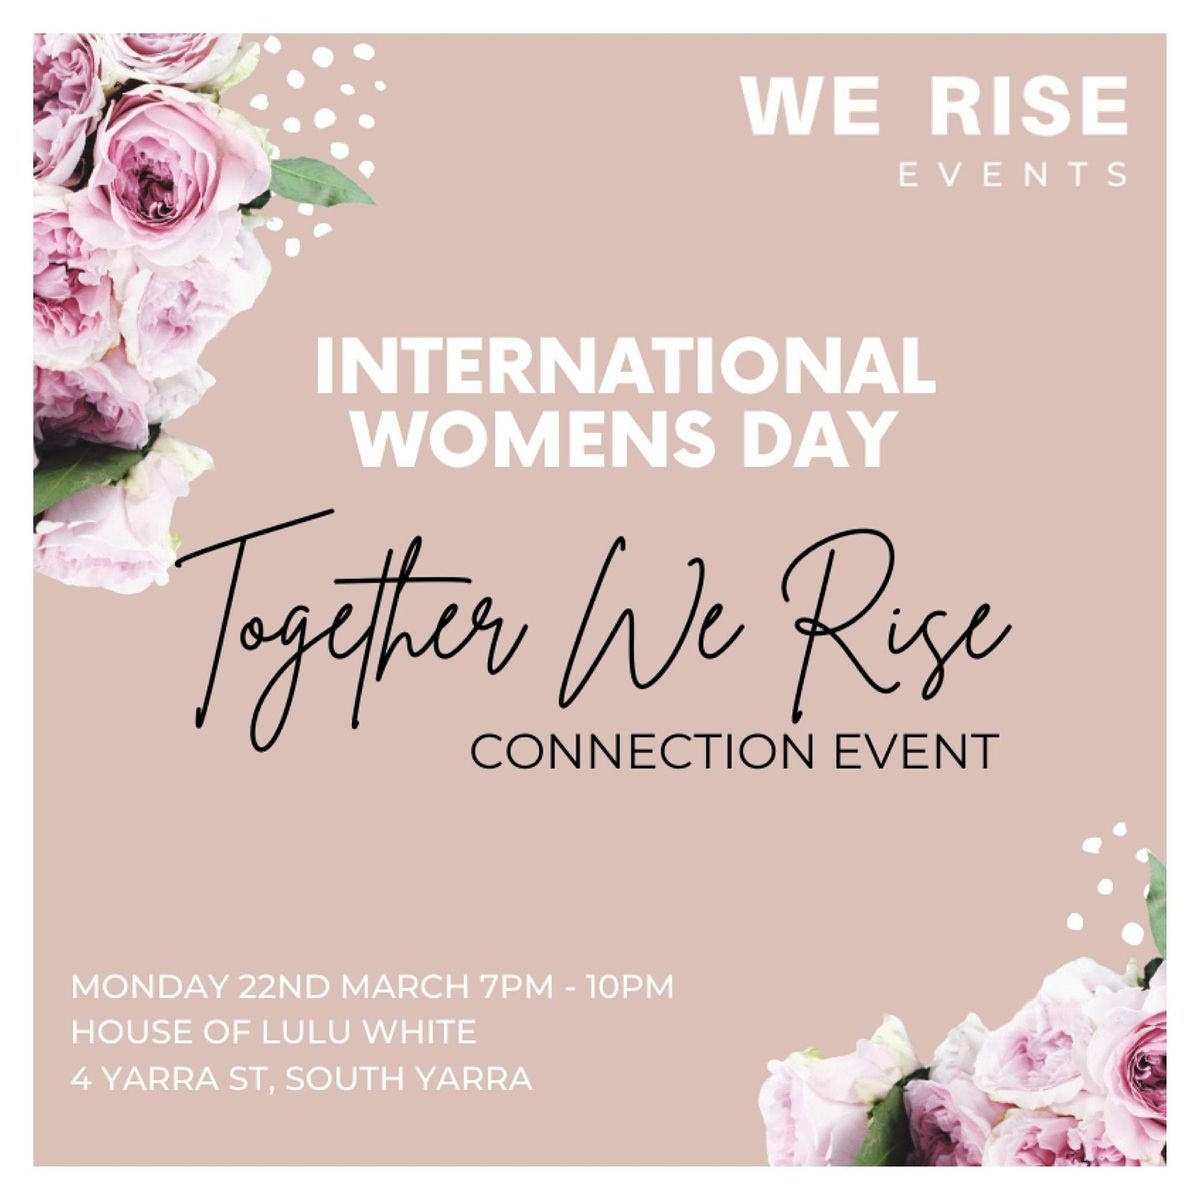 International Women's day ' Together We Rise' Connection Event, 23 April | Event in South Yarra | AllEvents.in